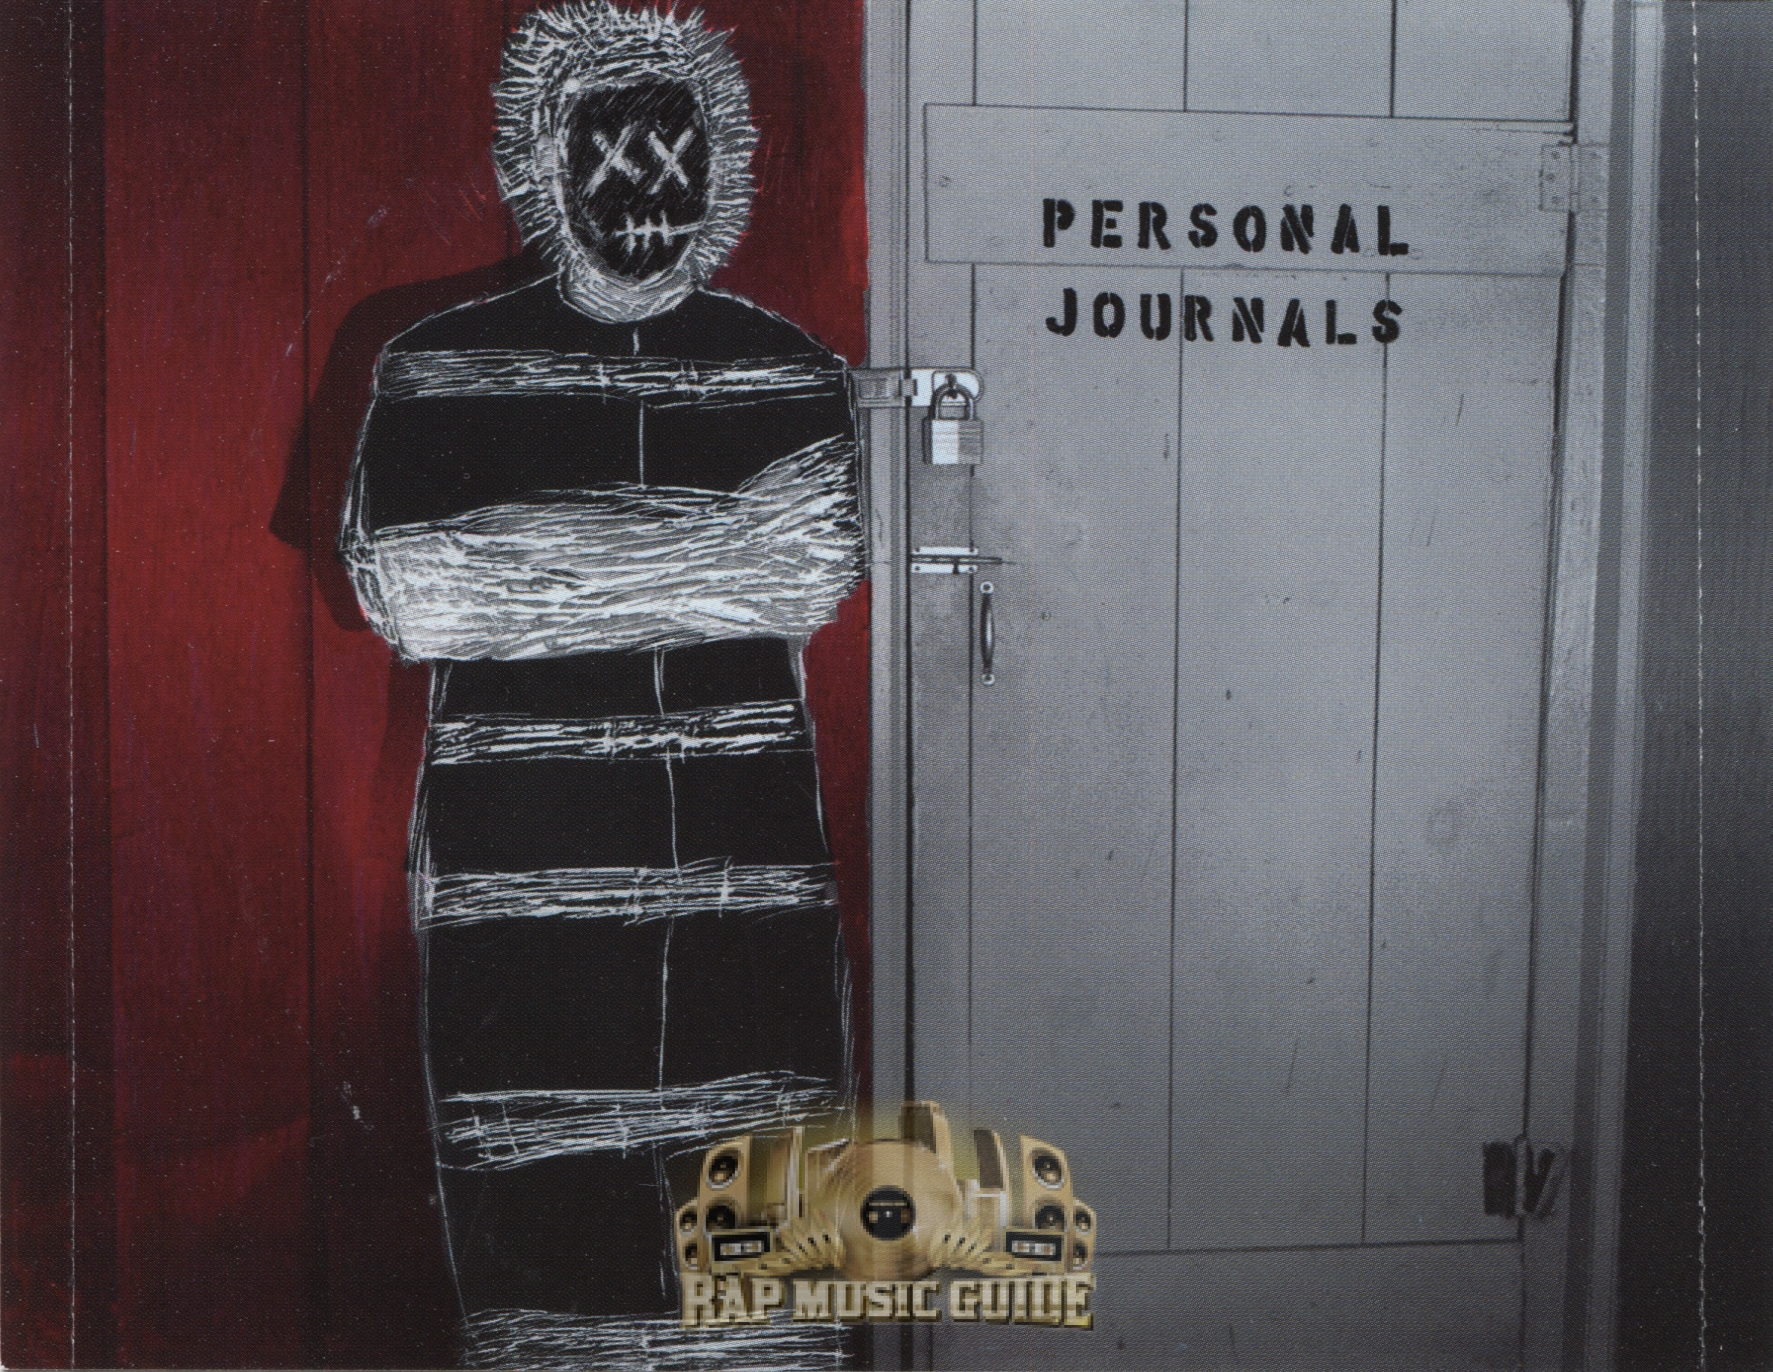 sage francis personal journals cd rap music guide